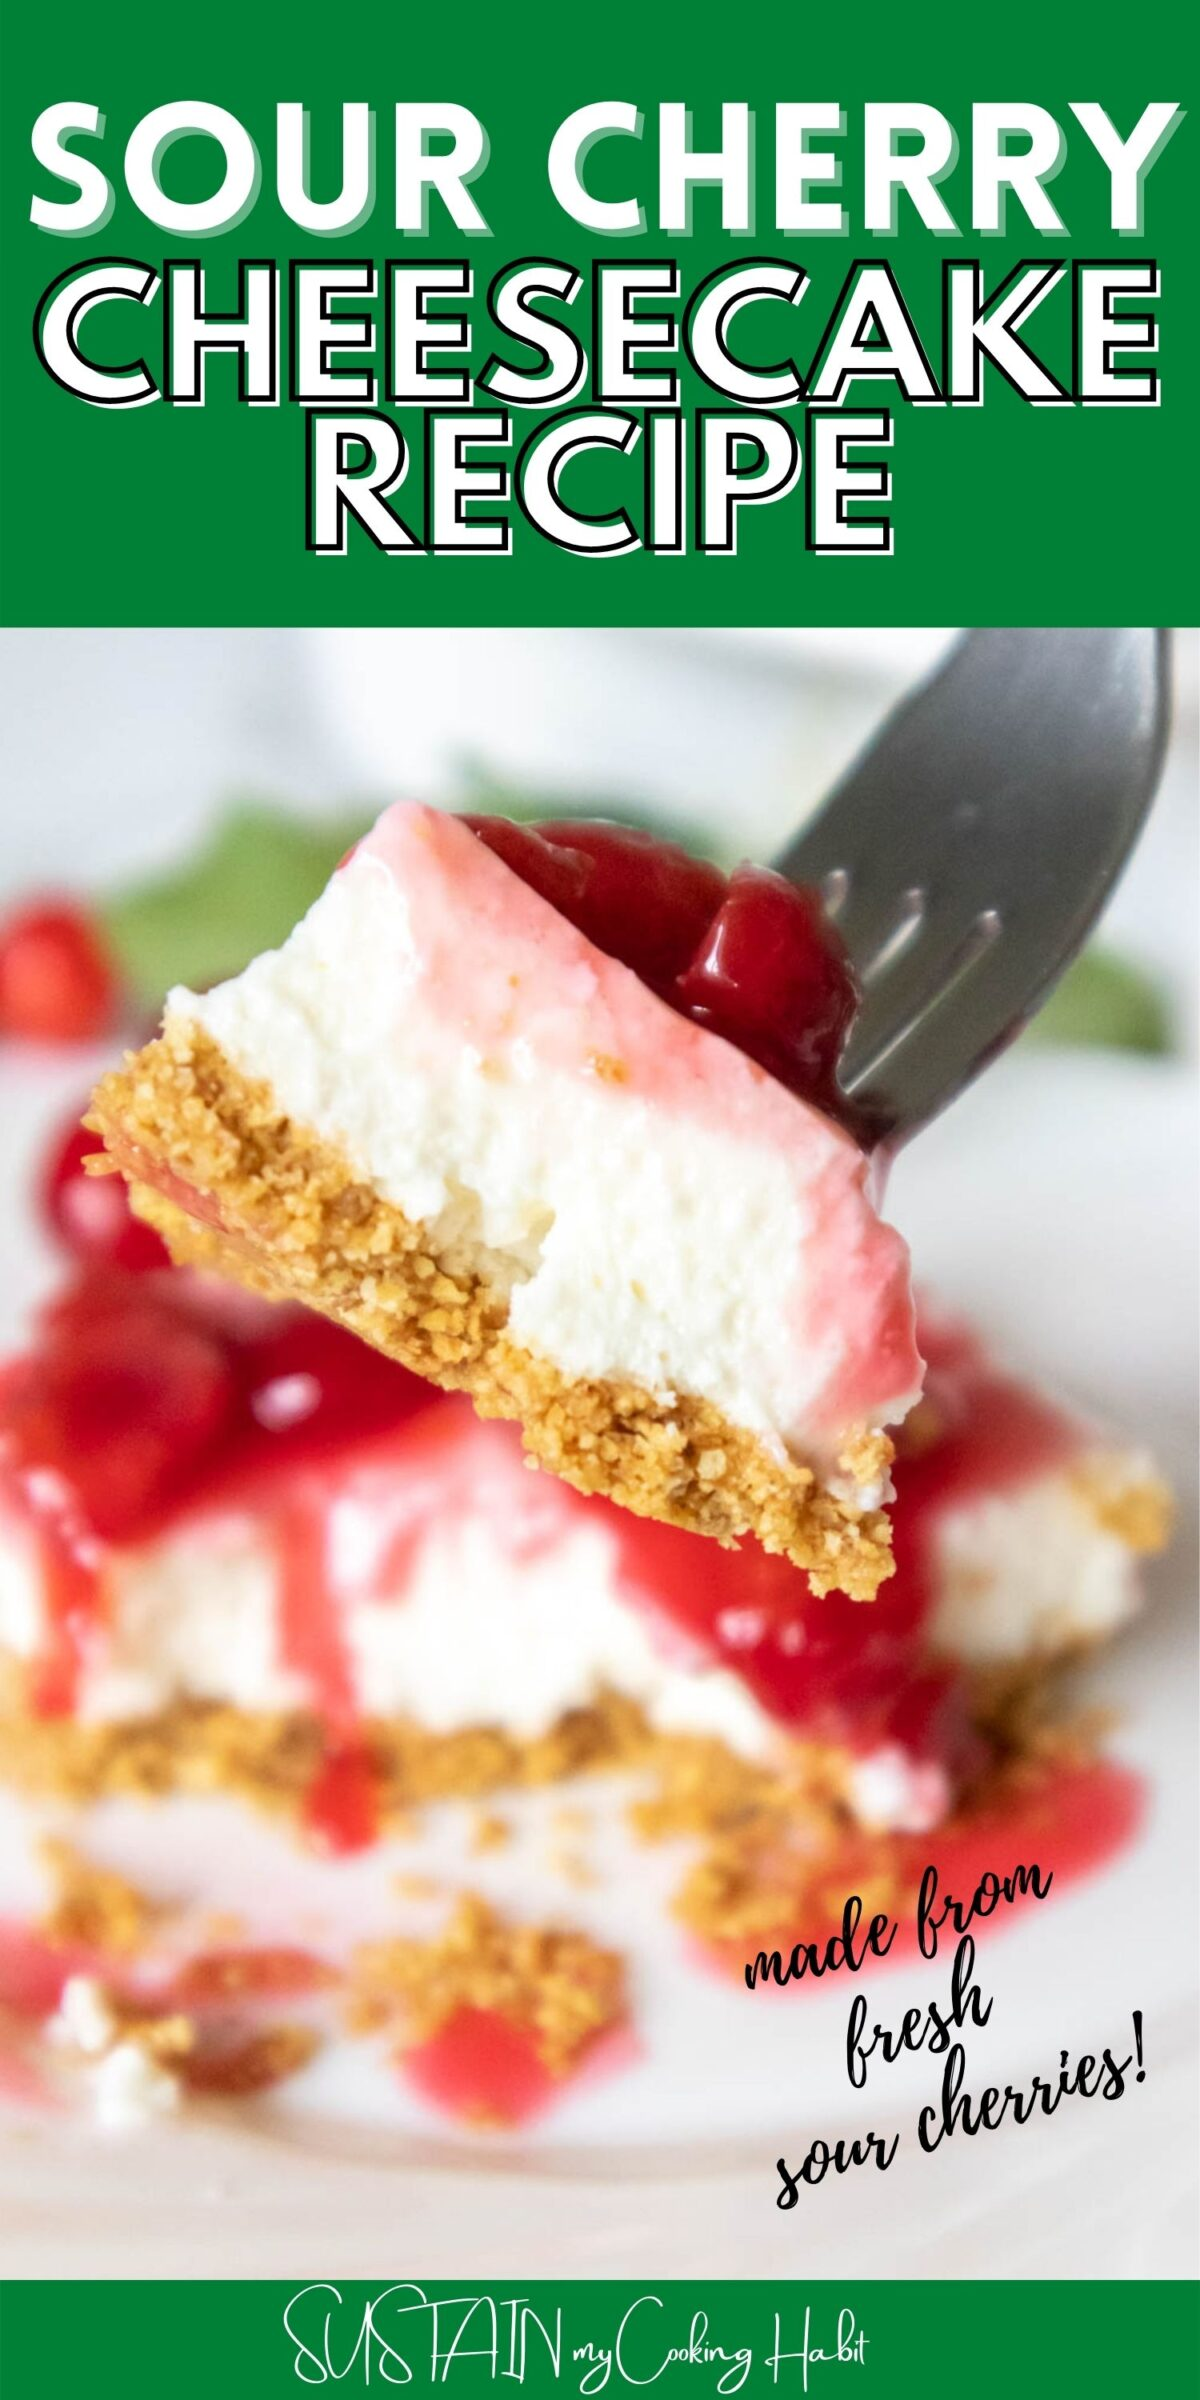 graphic showing a forkful of sour cherry cheesecake with text overlay